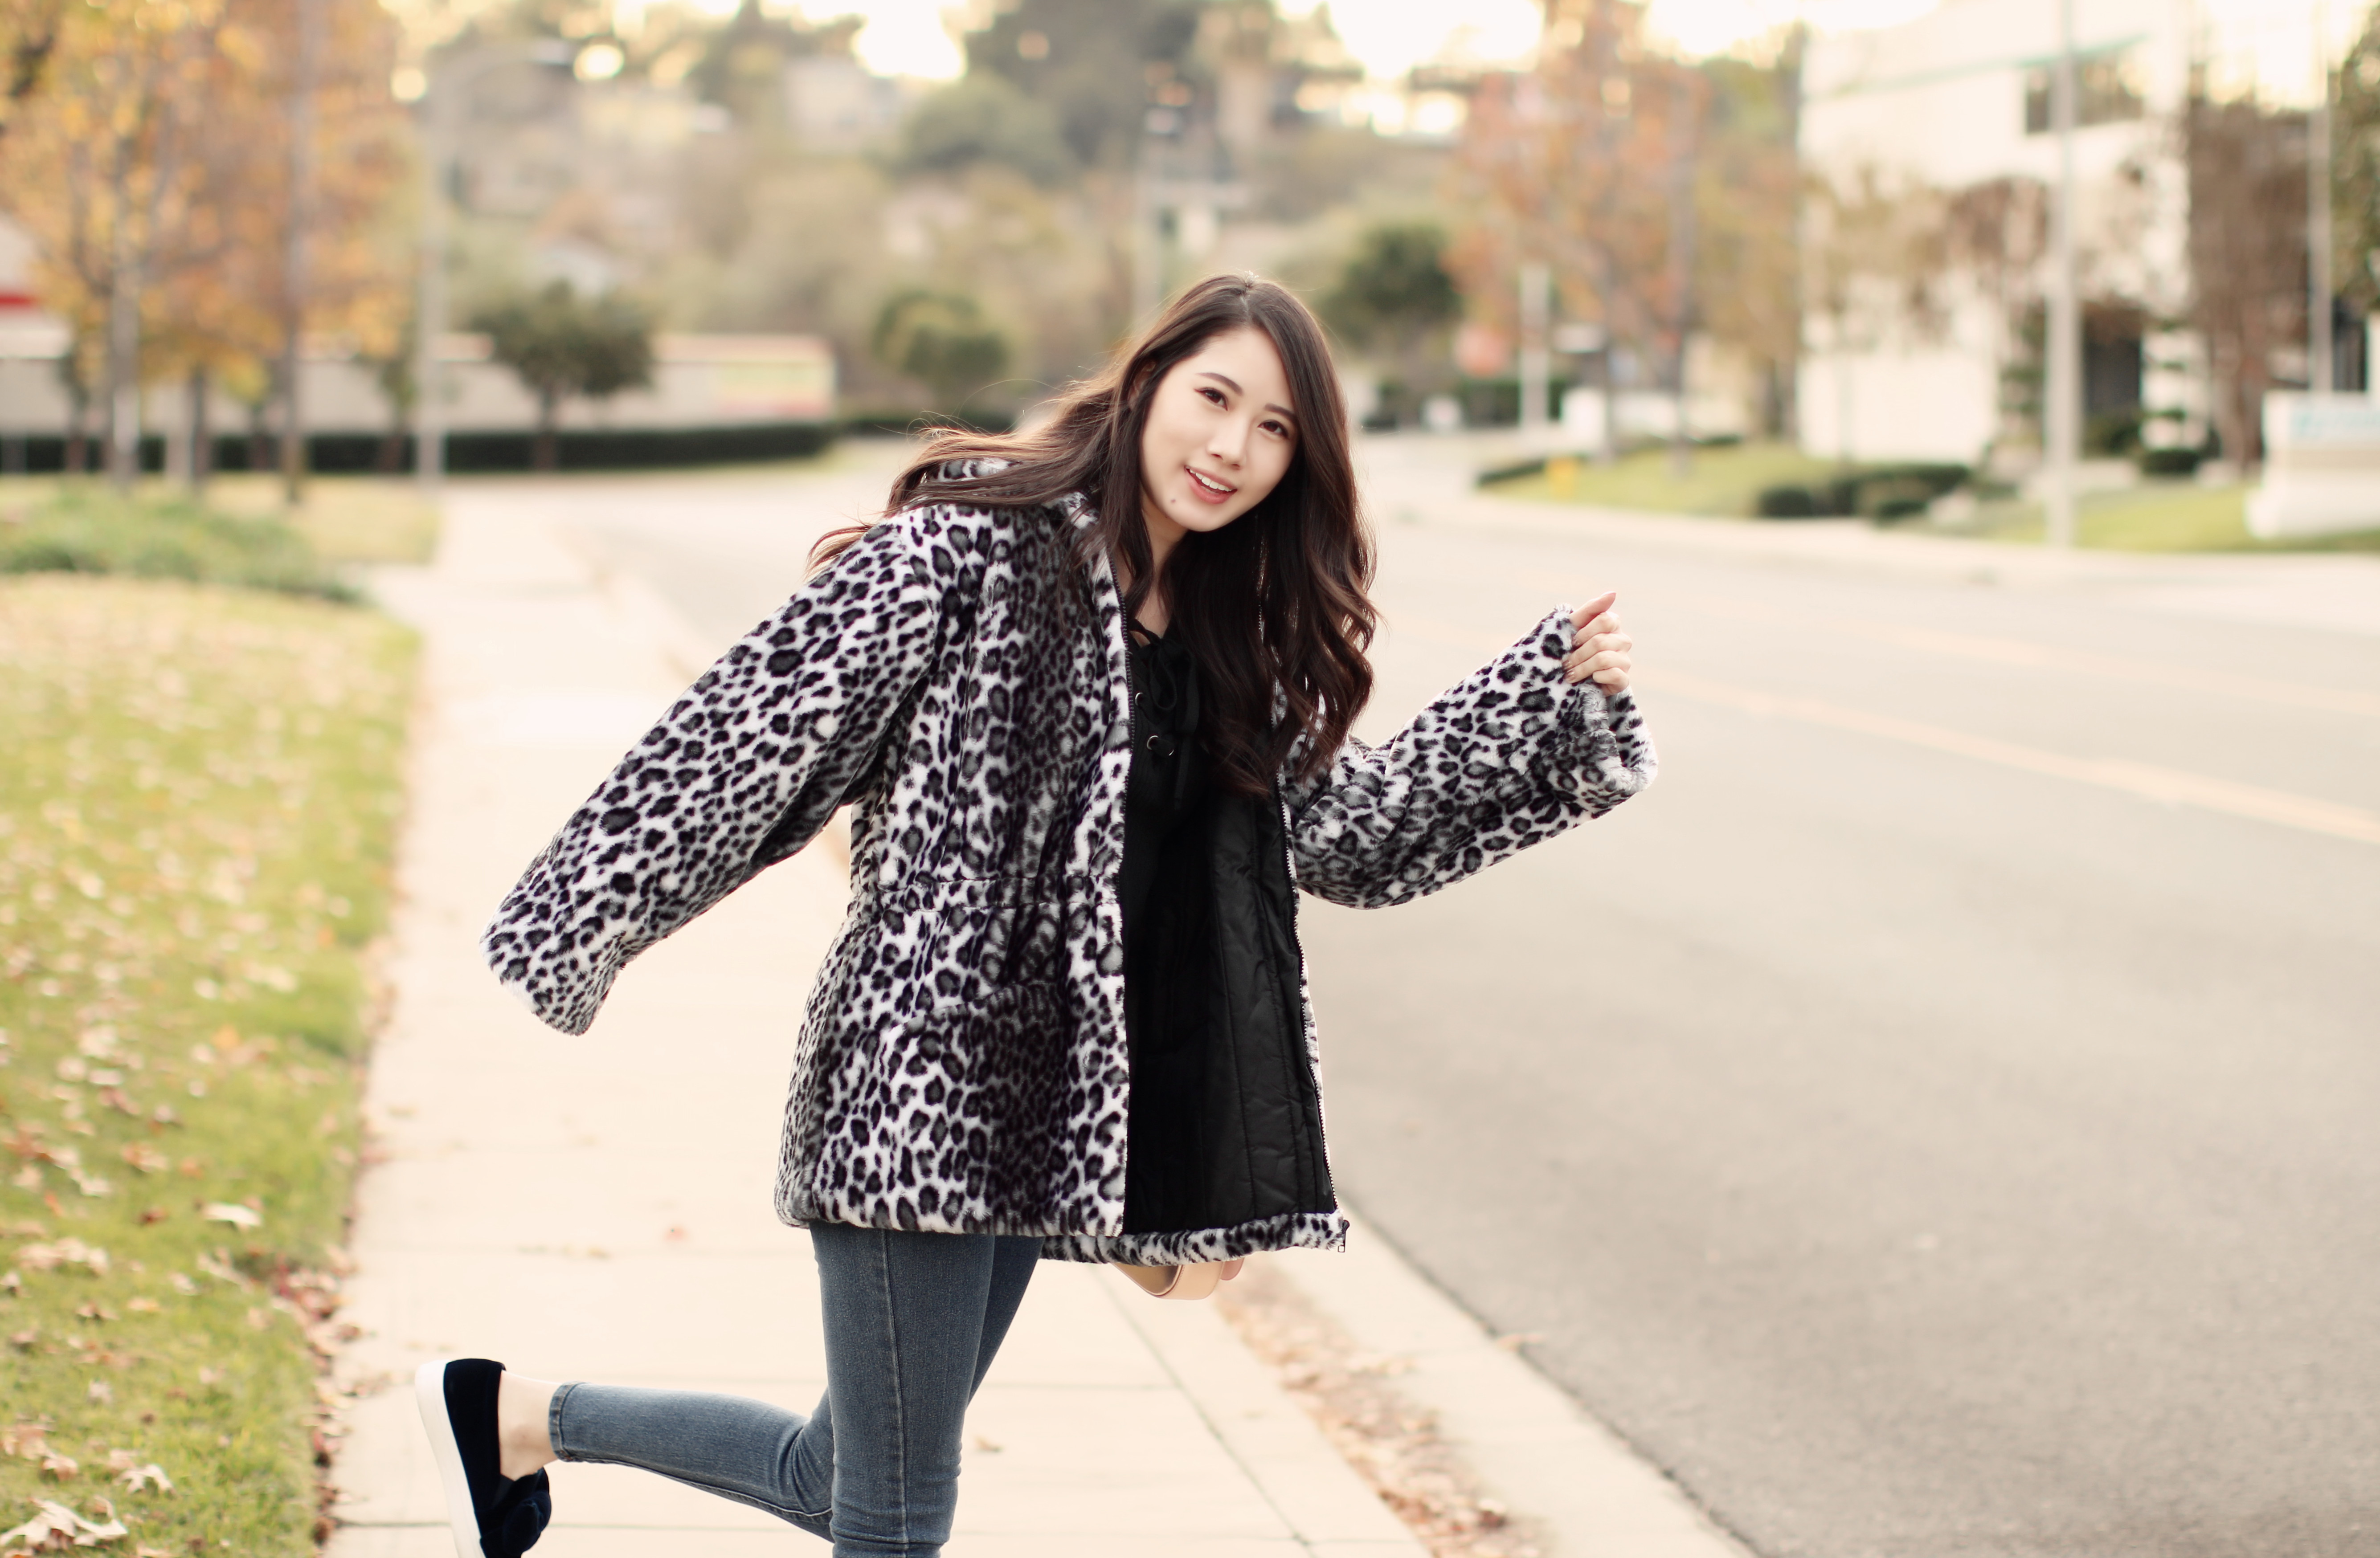 4055-ootd-fashion-style-outfitoftheday-wiwt-streetstyle-furcoat-fauxfur-forever21-f21xme-hollister-hcostylescene-elizabeeetht-clothestoyouuu